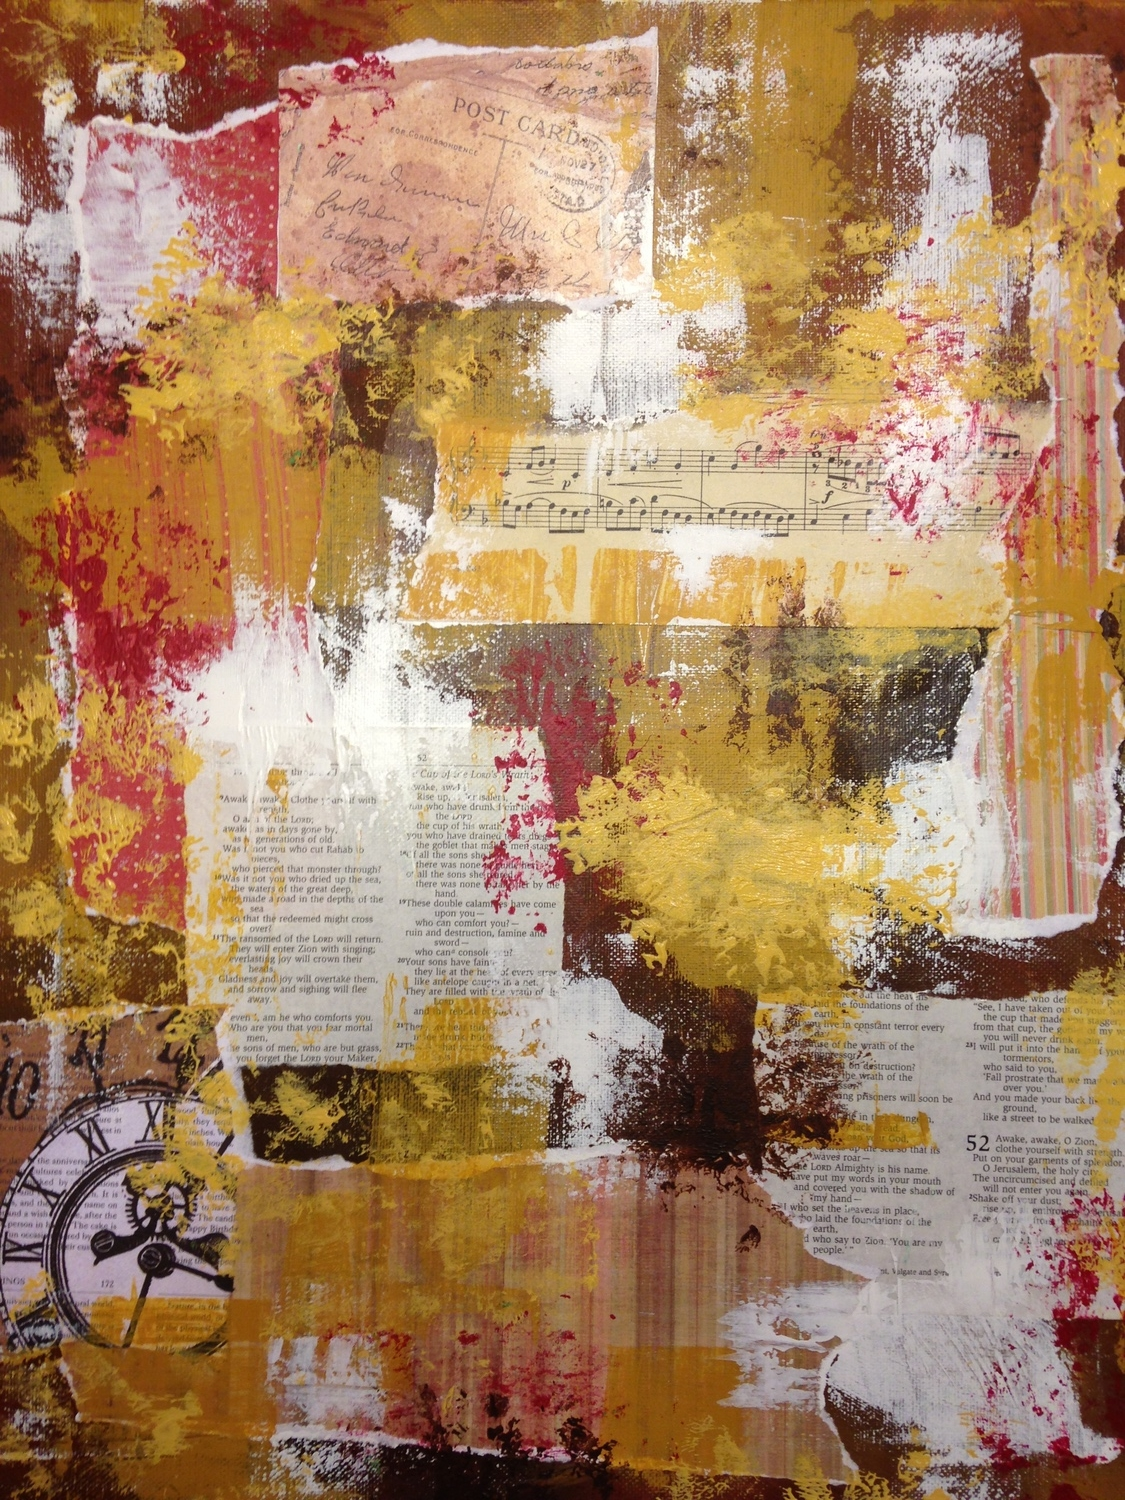 Layering collage elements and more paint.